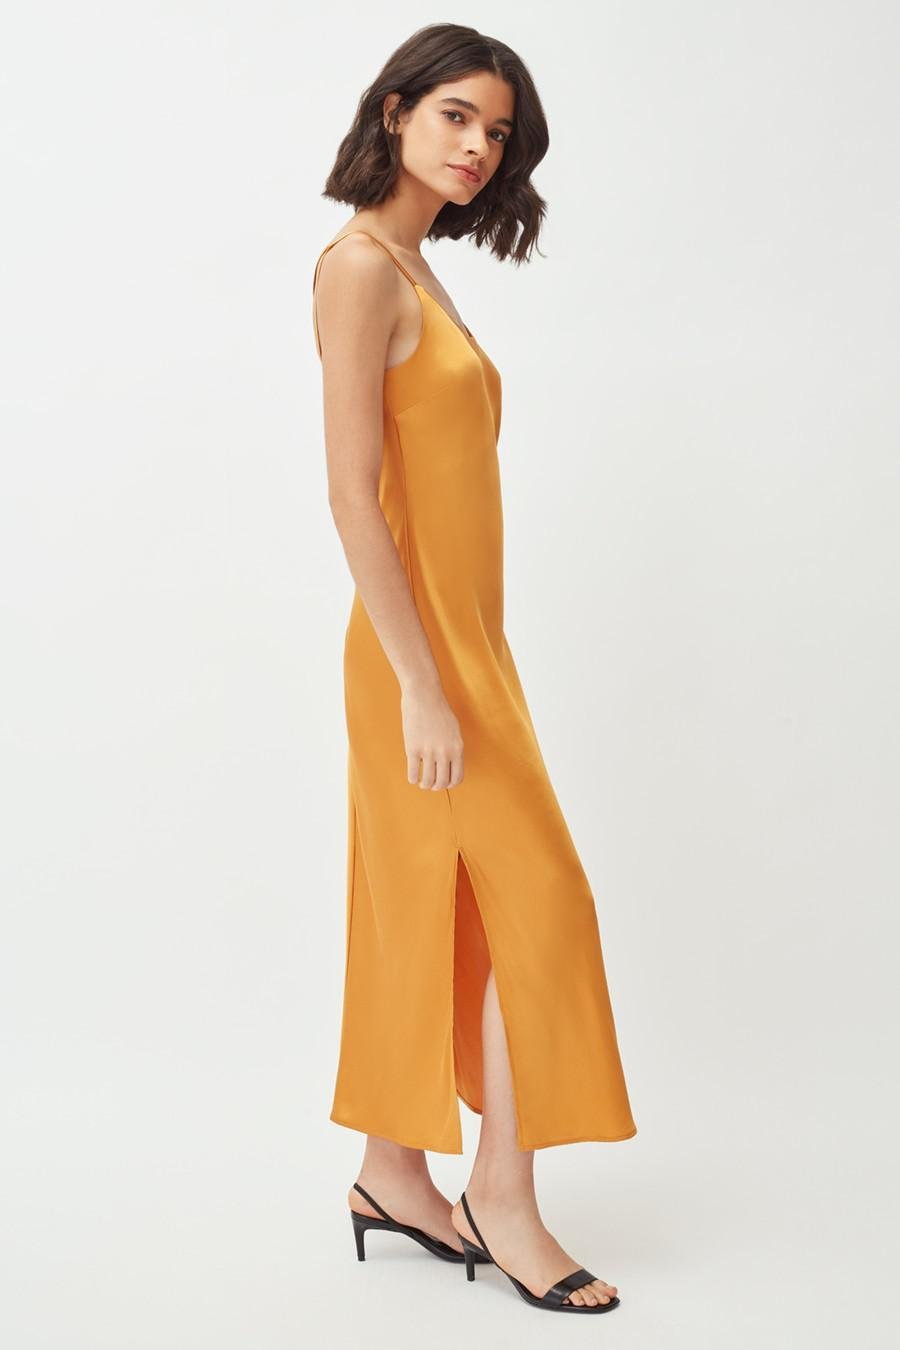 Women's Charmeuse Slip Dress in Citrine | Size: Large | Silk Charmeuse by Cuyana 2